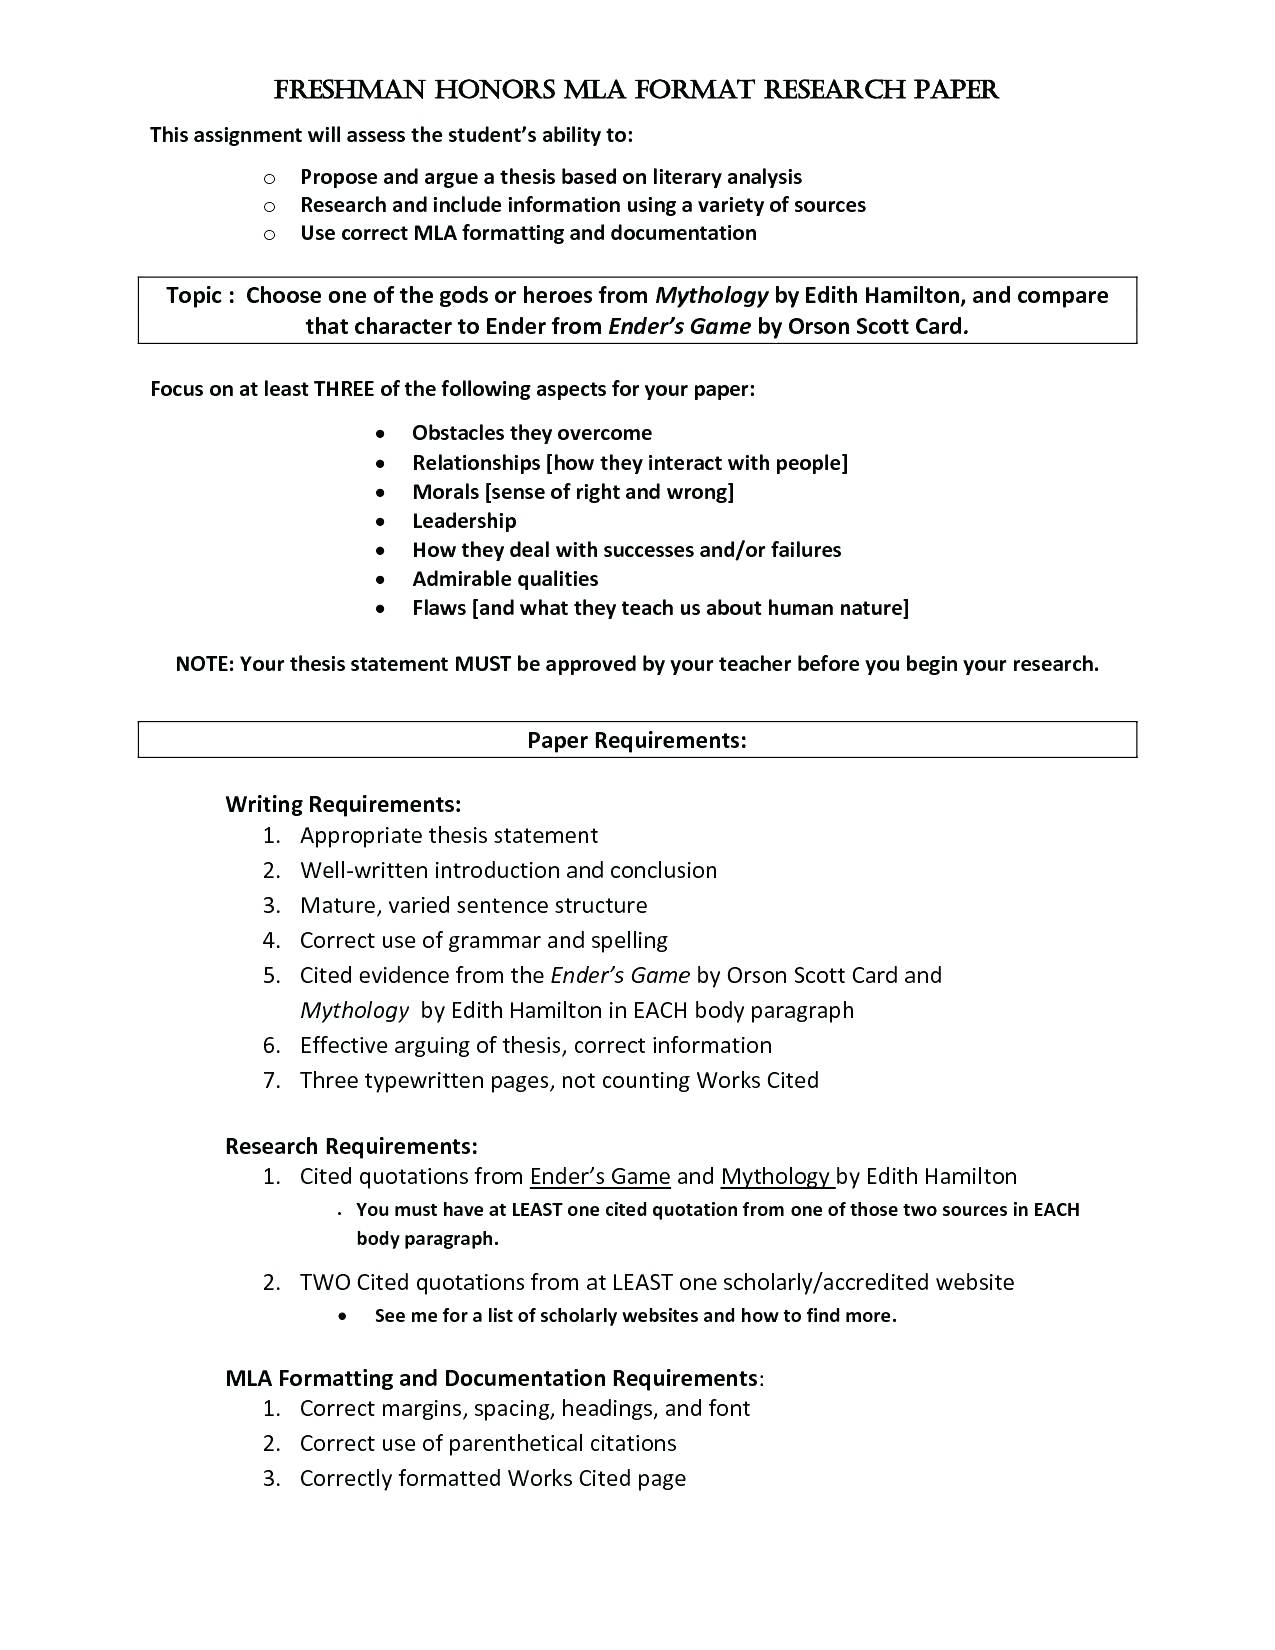 018 Work Cited Format Template Luxury Unique How To Quote In Wallpaper Site Mla Resume Wallpa Research Awesome Paper Outline Example Full